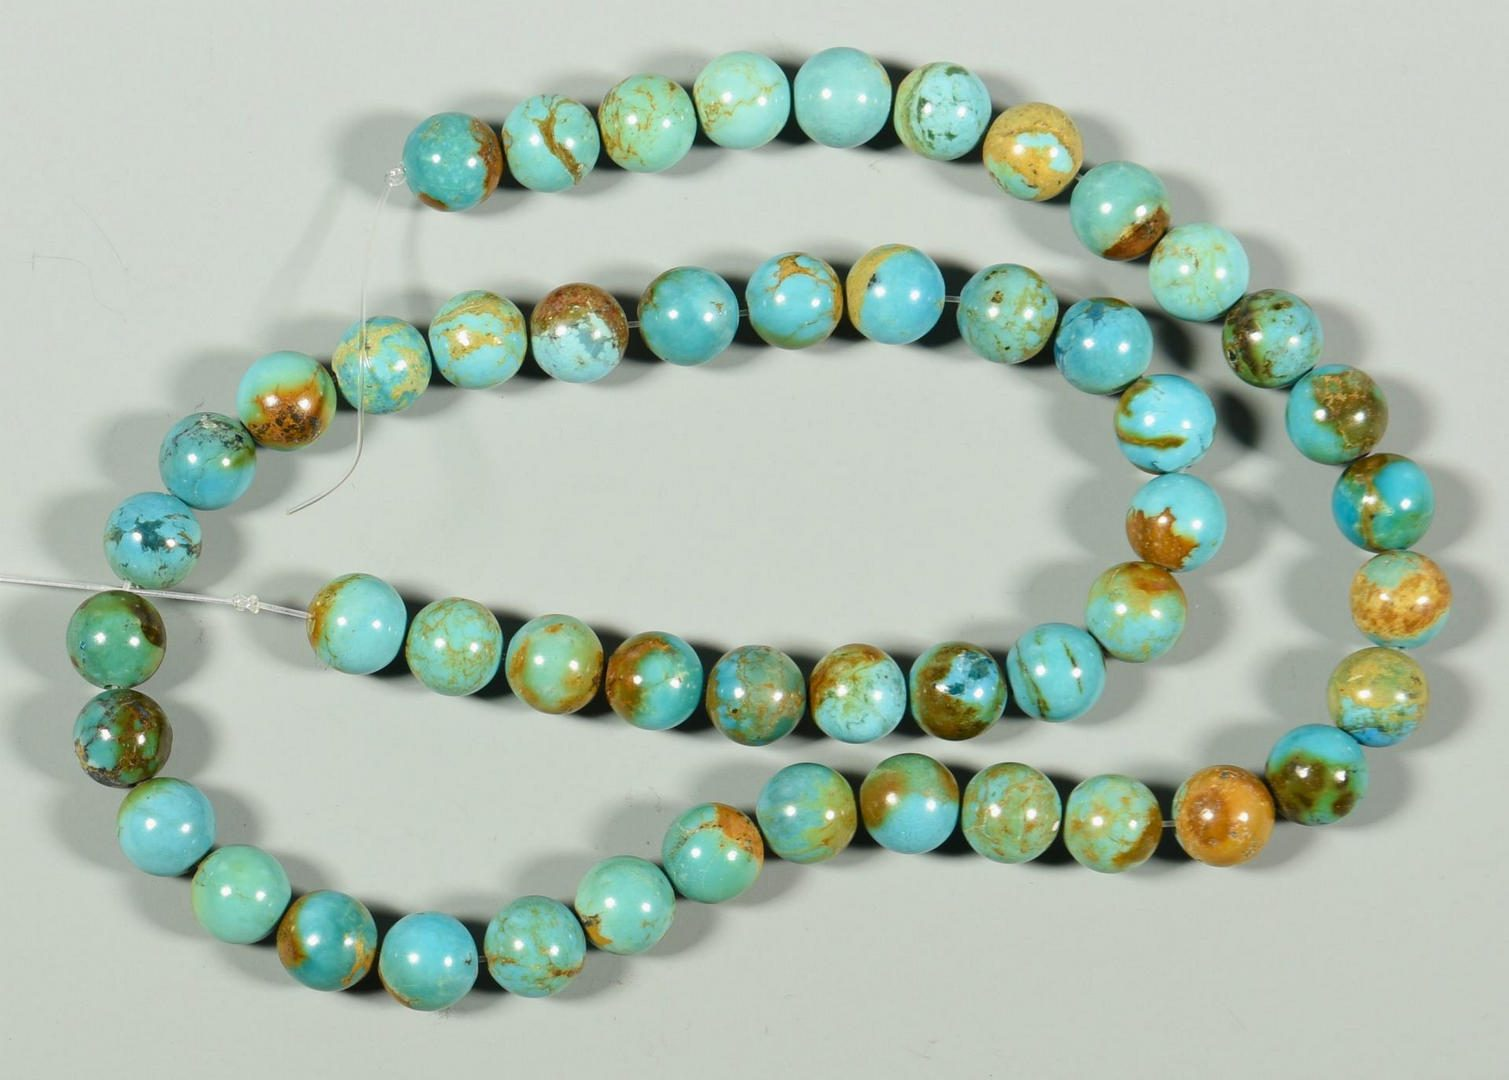 Lot 225: Group of Loose Turquoise Stones